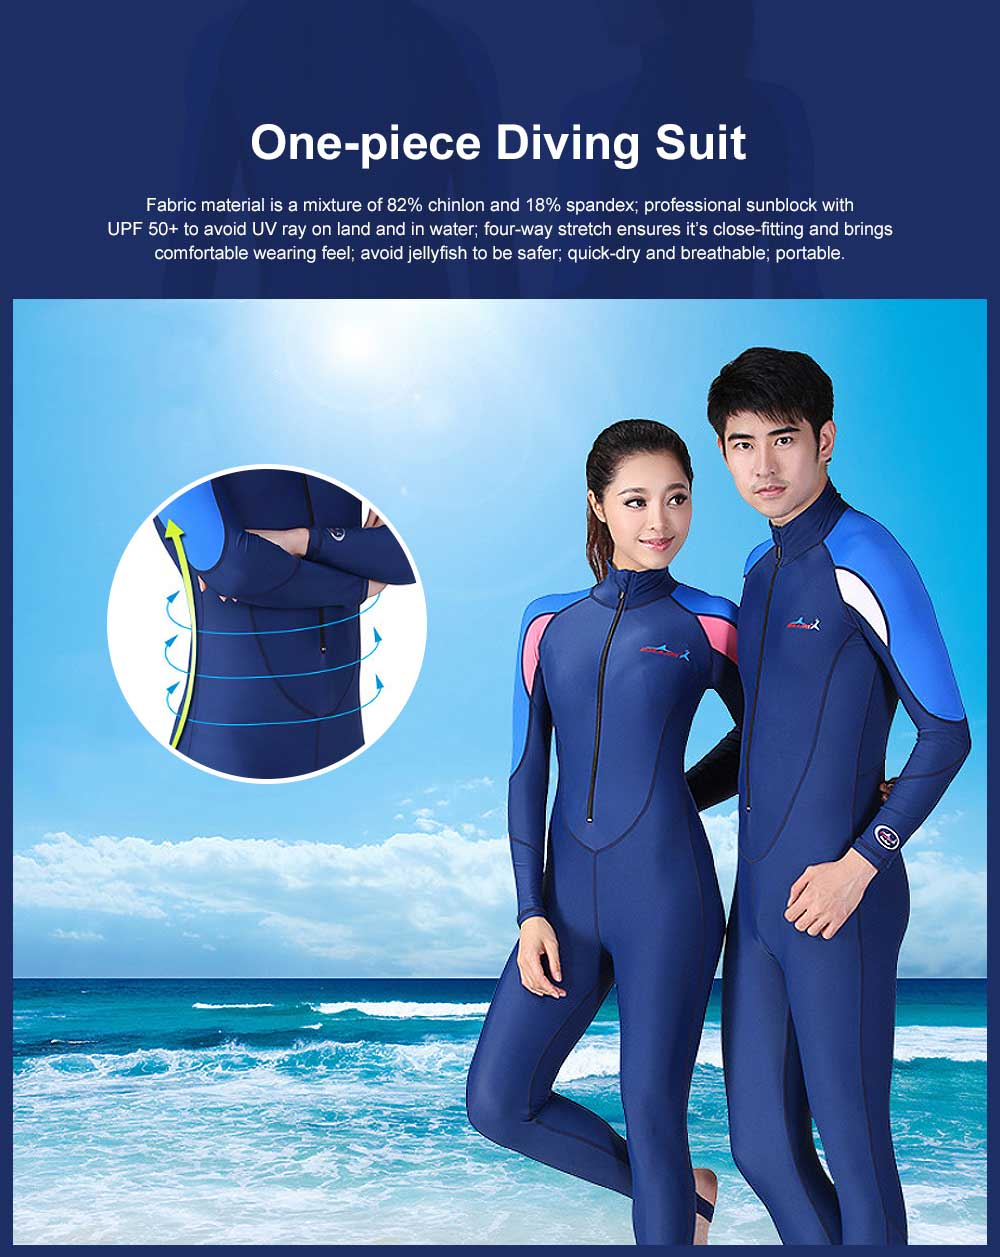 One-piece Unisex Diving Suit, Multifunctional One-piece Sunblock Diving Dress, Surfing Swimsuit Snorkeling Swimwear of Jellyfish Prevention Bathing Suit Blue 0